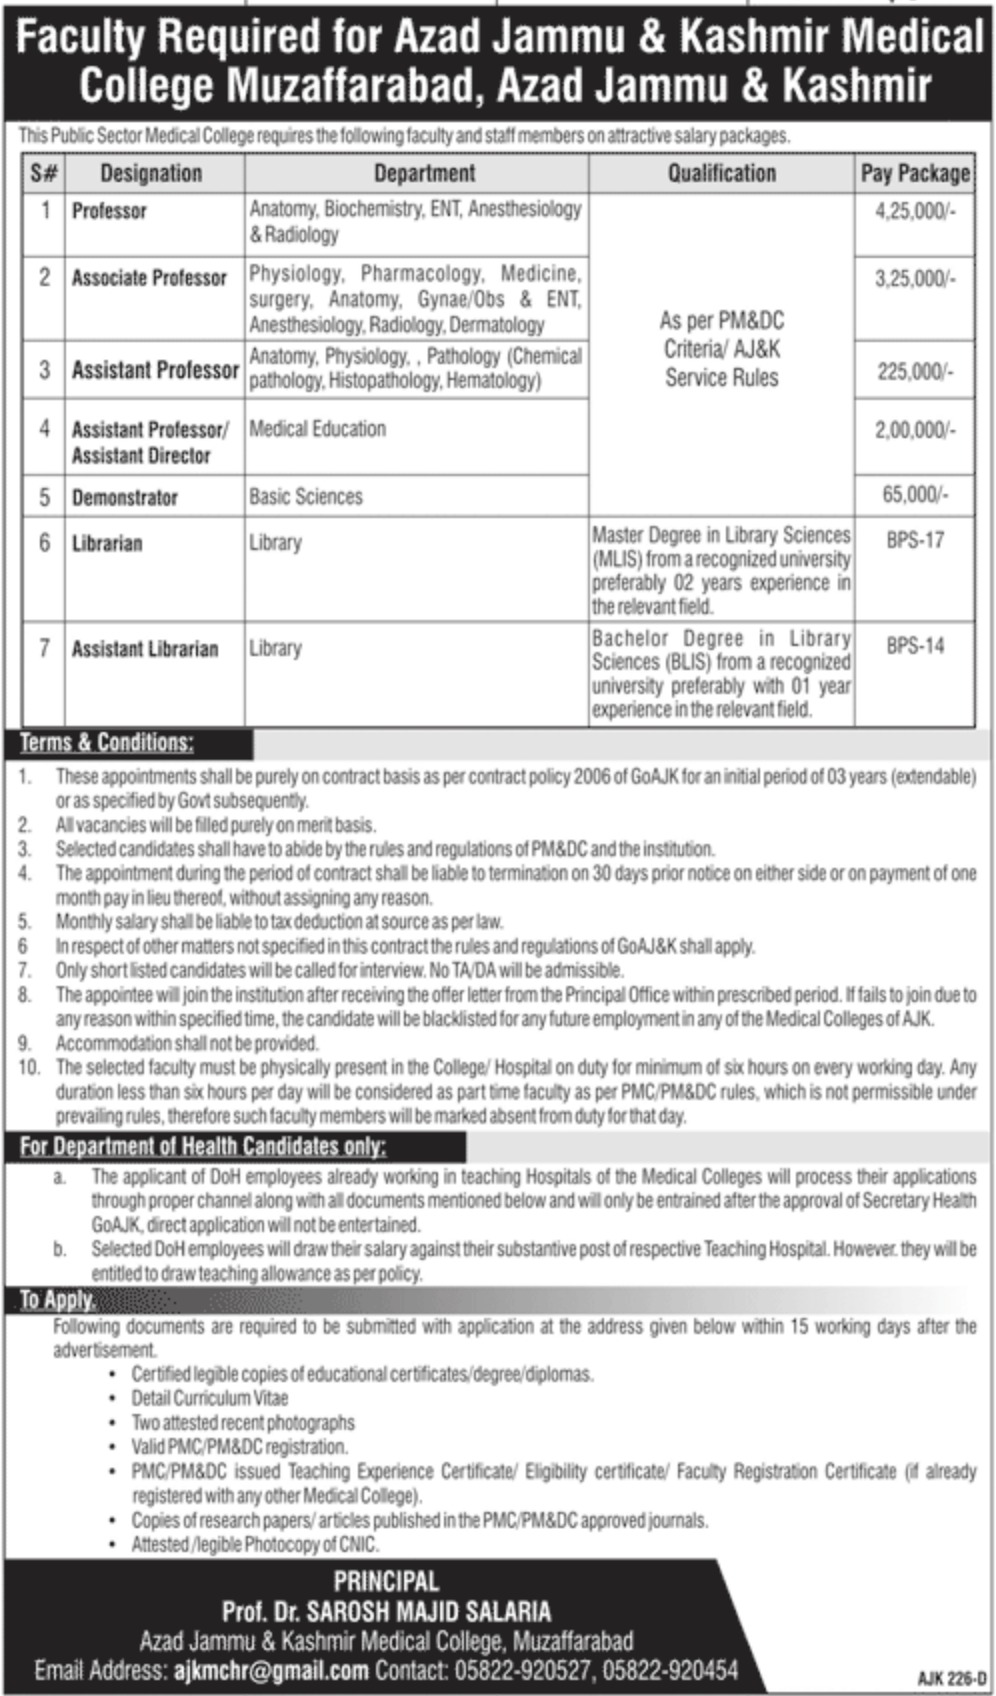 Azad Jammu & Kashmir Medical College Muzaffarabad Jobs 2020 AJK